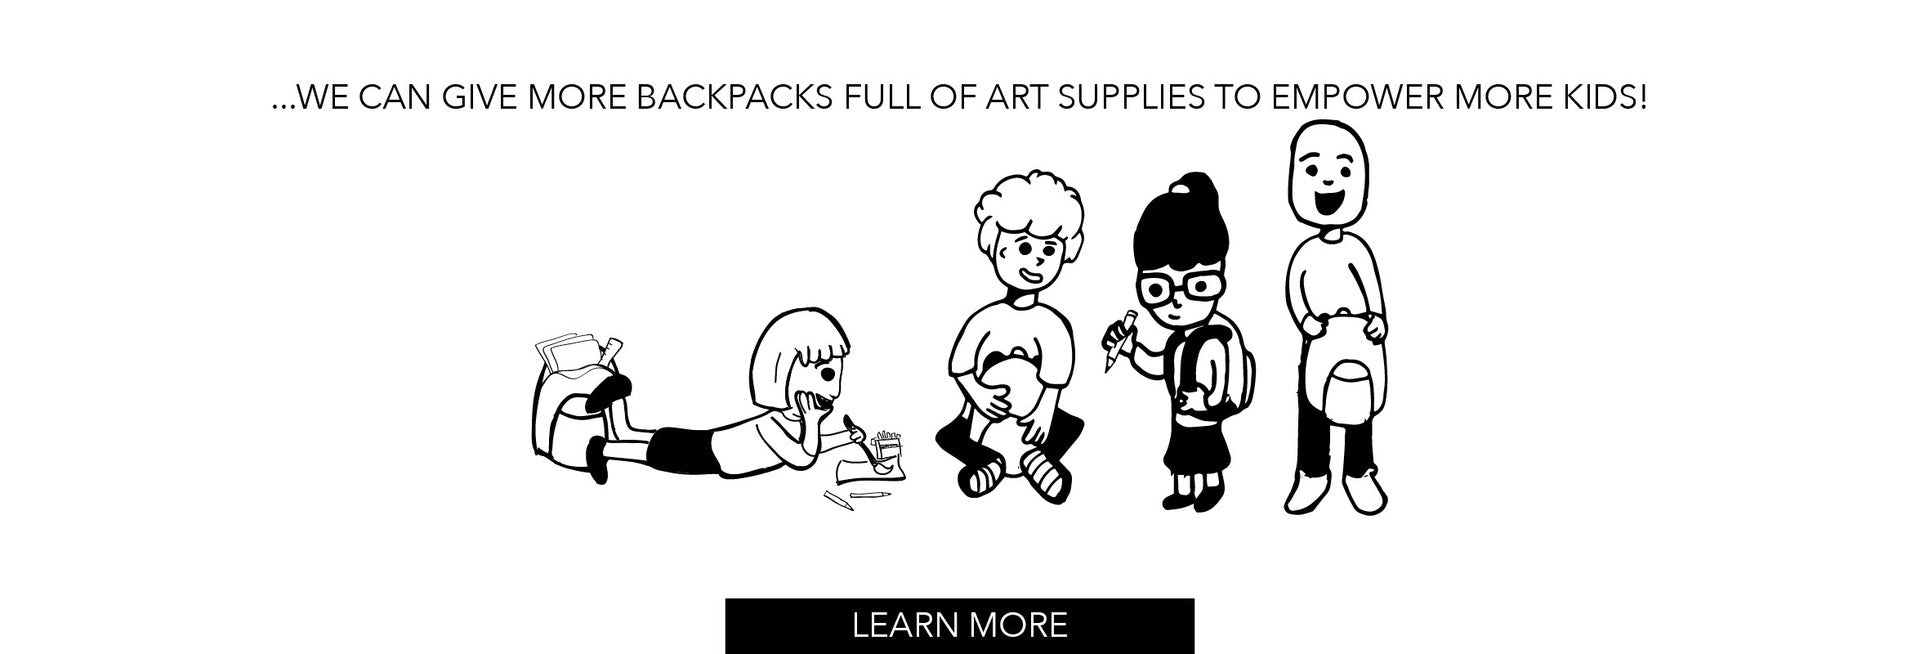 ...we can give more backpacks full of art supplies to empower more kids!